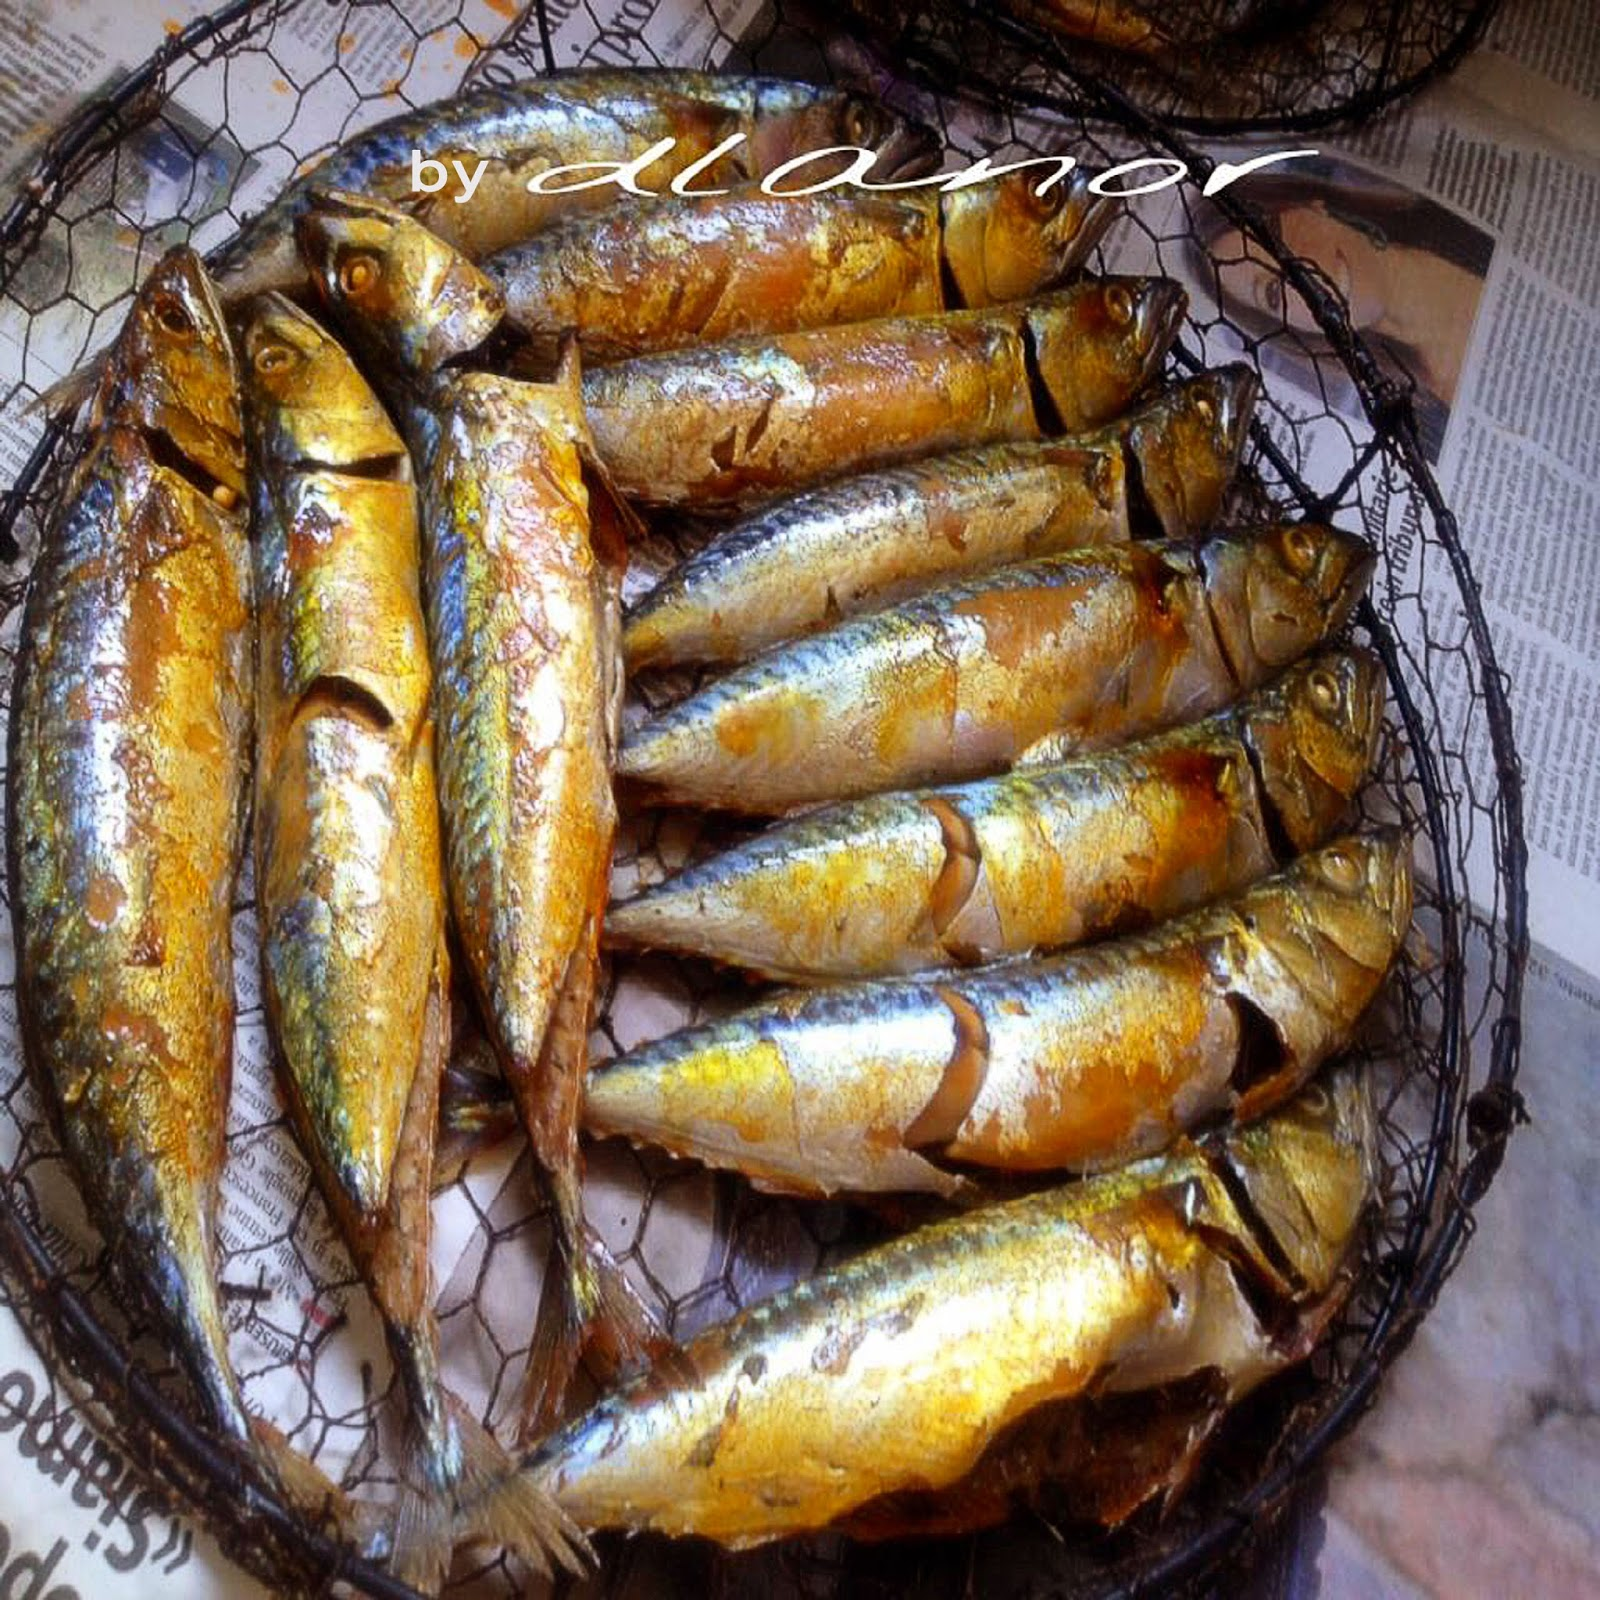 How To Make Easy Smoked Fish At Home